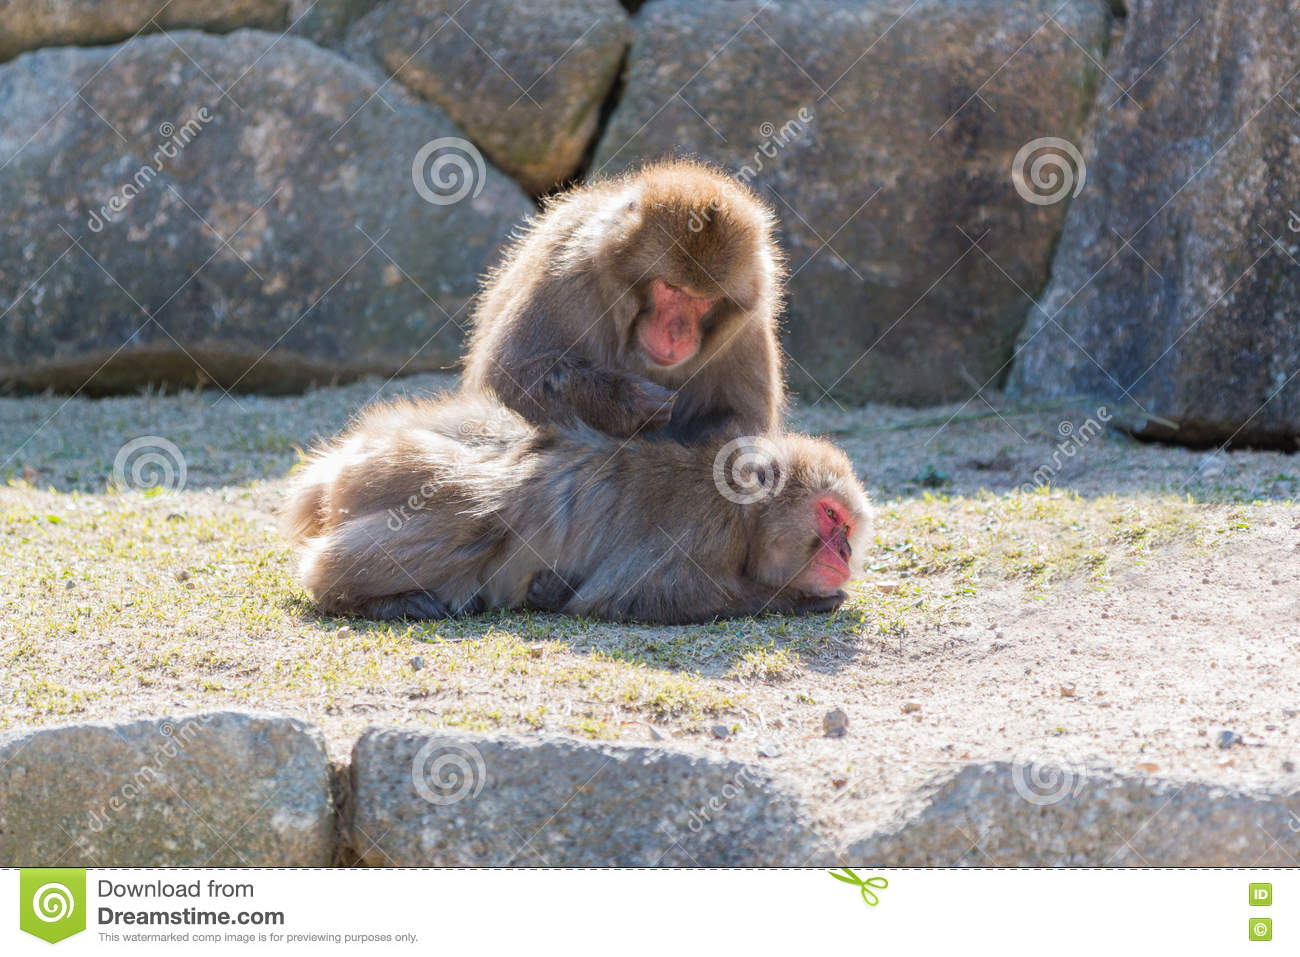 Macaca Fuscata Or Japanese Macaque Relaxing  Stock Photo - Image of